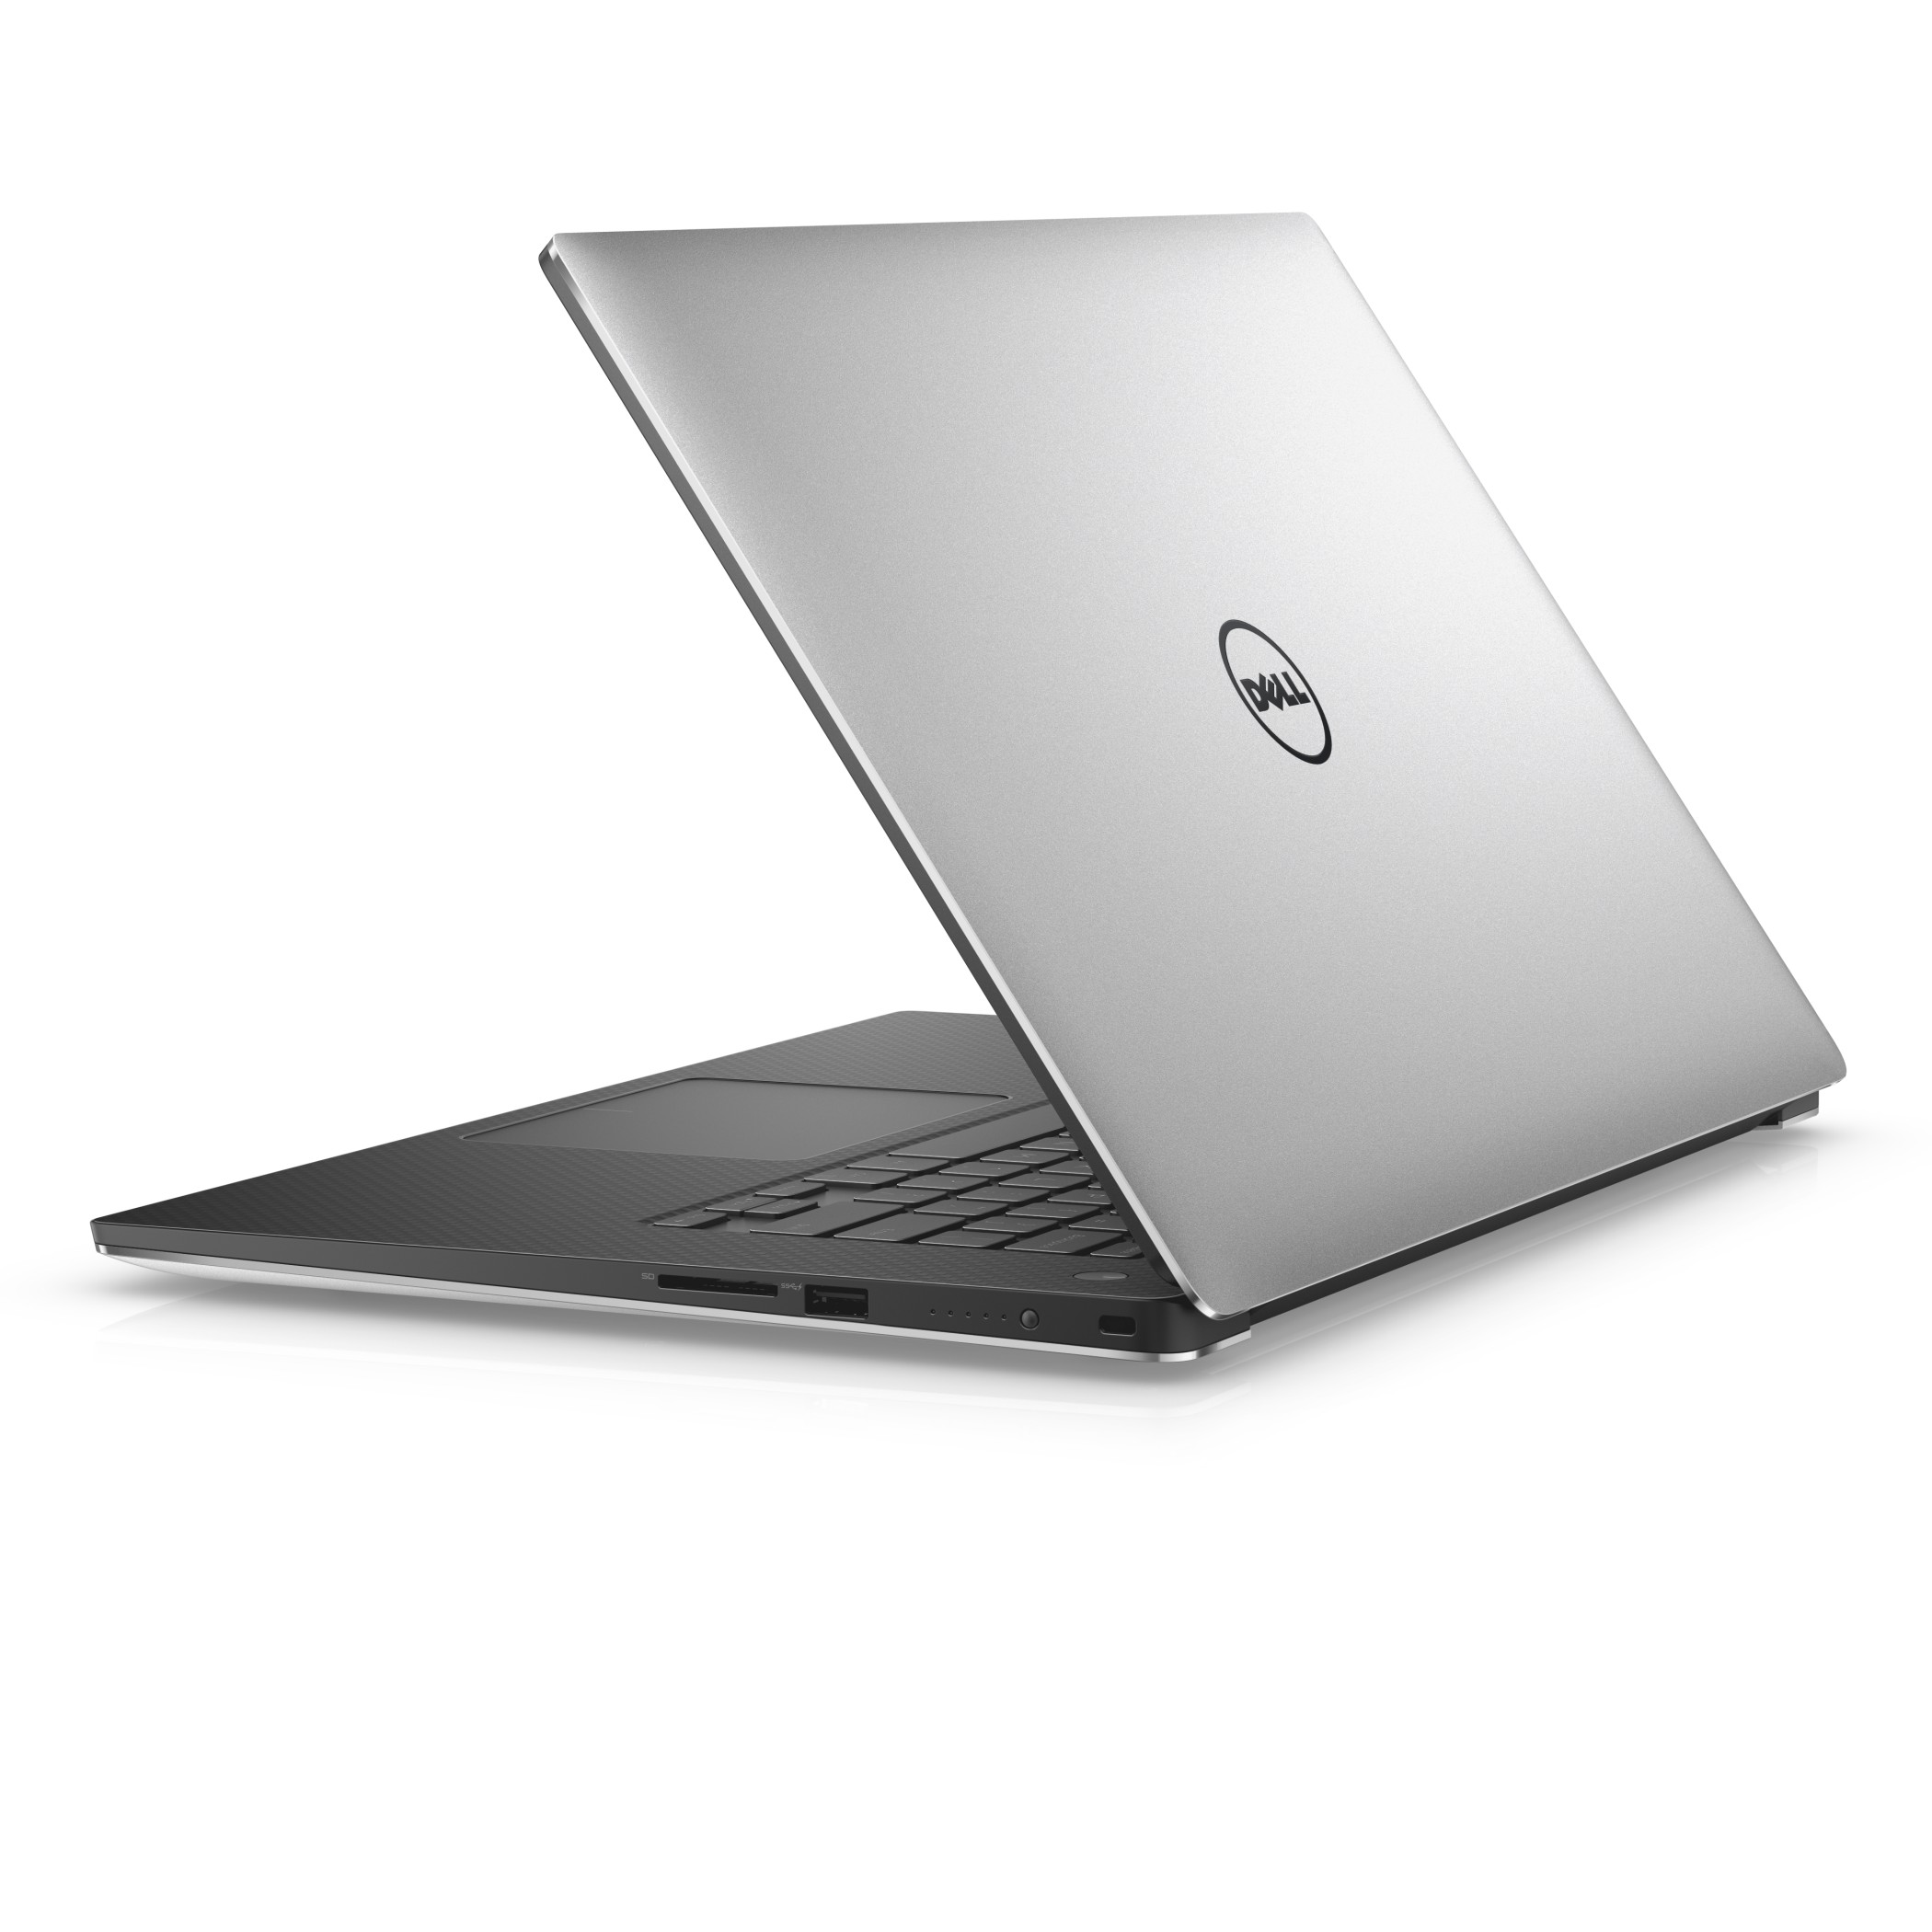 "N5-9550-N2-01 Dell XPS 15 9550 15"" UHD Touch  i7/16GB/512GB SSD/GTX960M/HDMI/WIFI/BT/MCR/W10/2RNB"